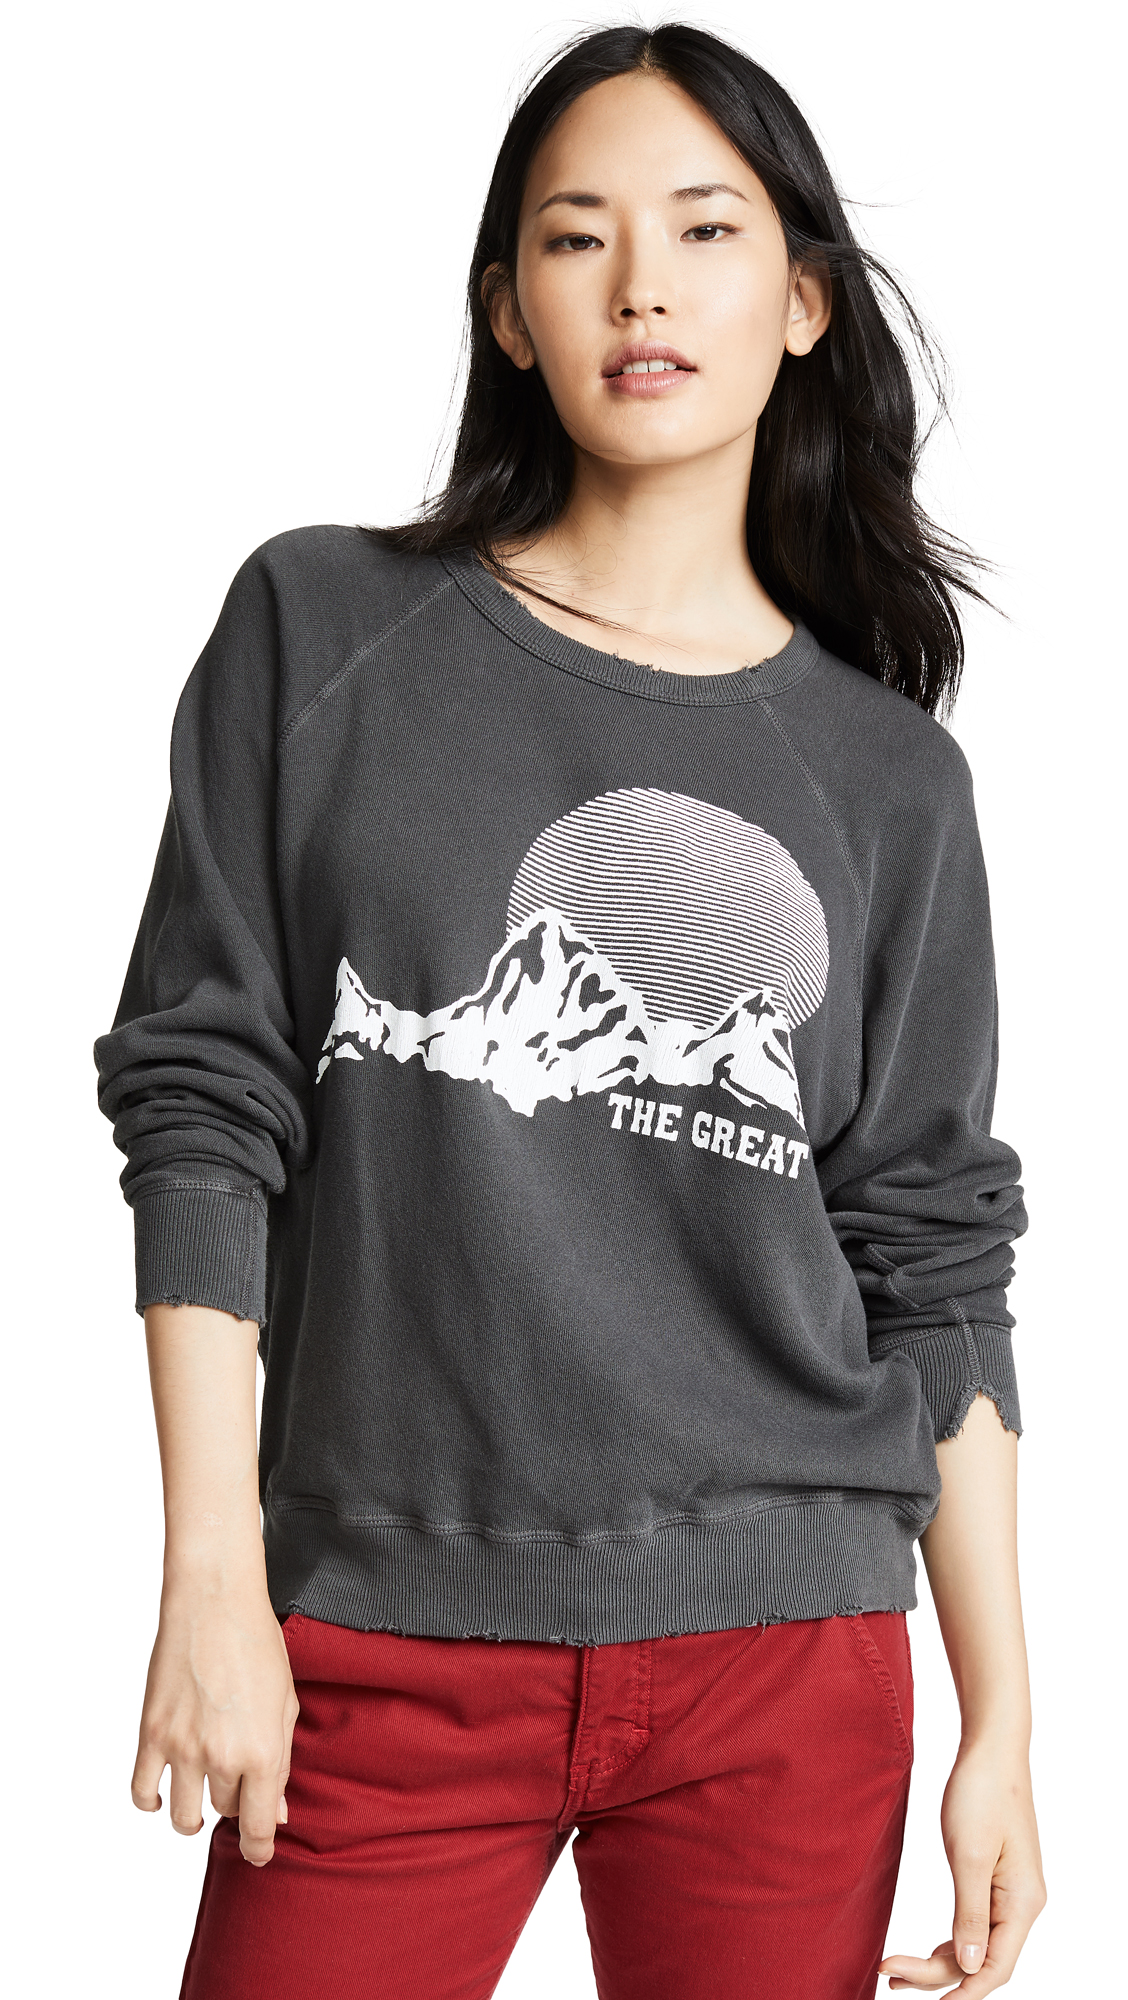 THE GREAT. The College Sweatshirt In Washed Black With Mountain